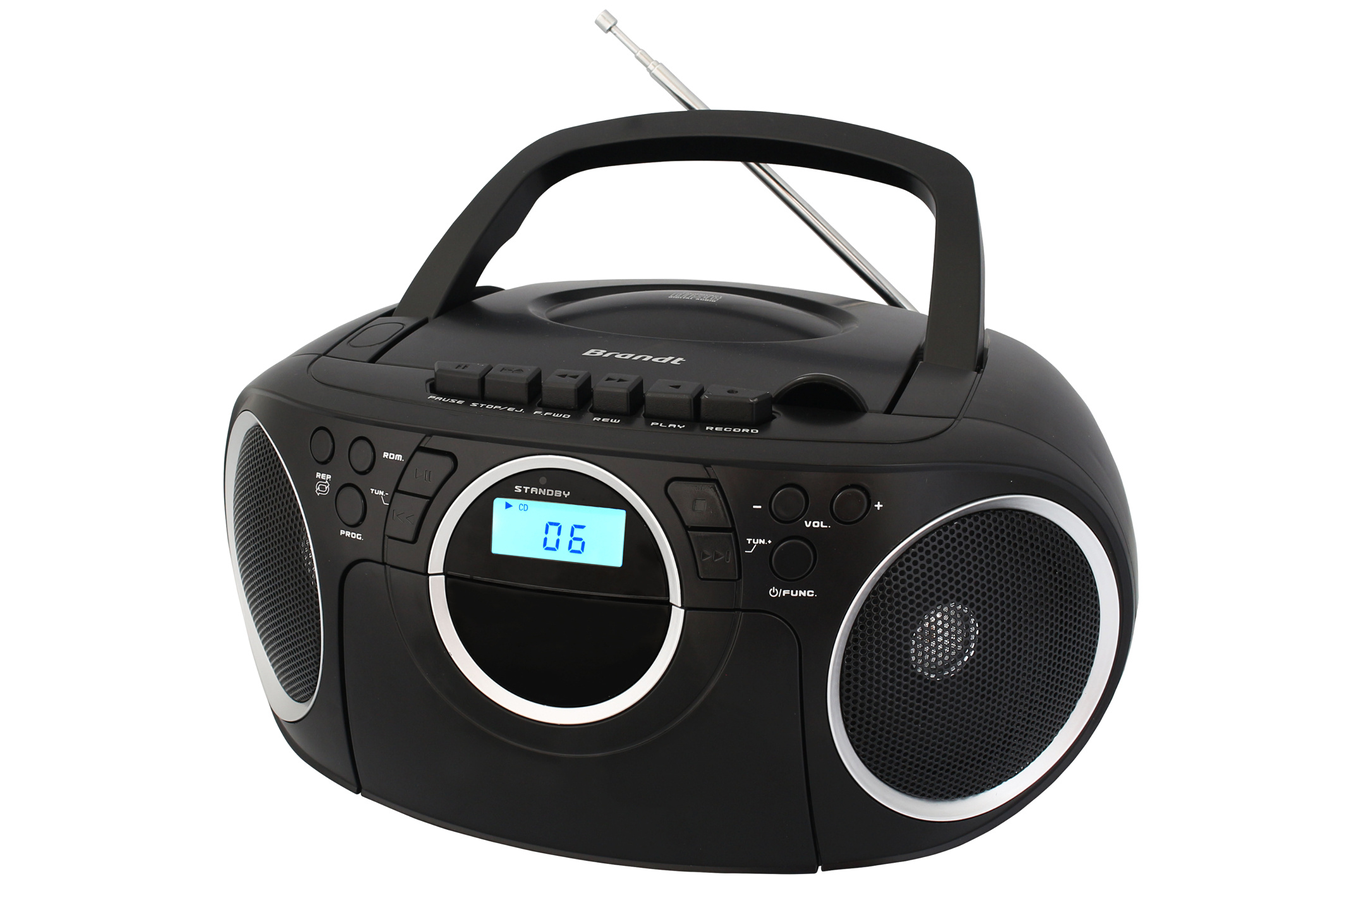 radio cd radio k7 cd brandt bcd350k7 4122070 darty. Black Bedroom Furniture Sets. Home Design Ideas